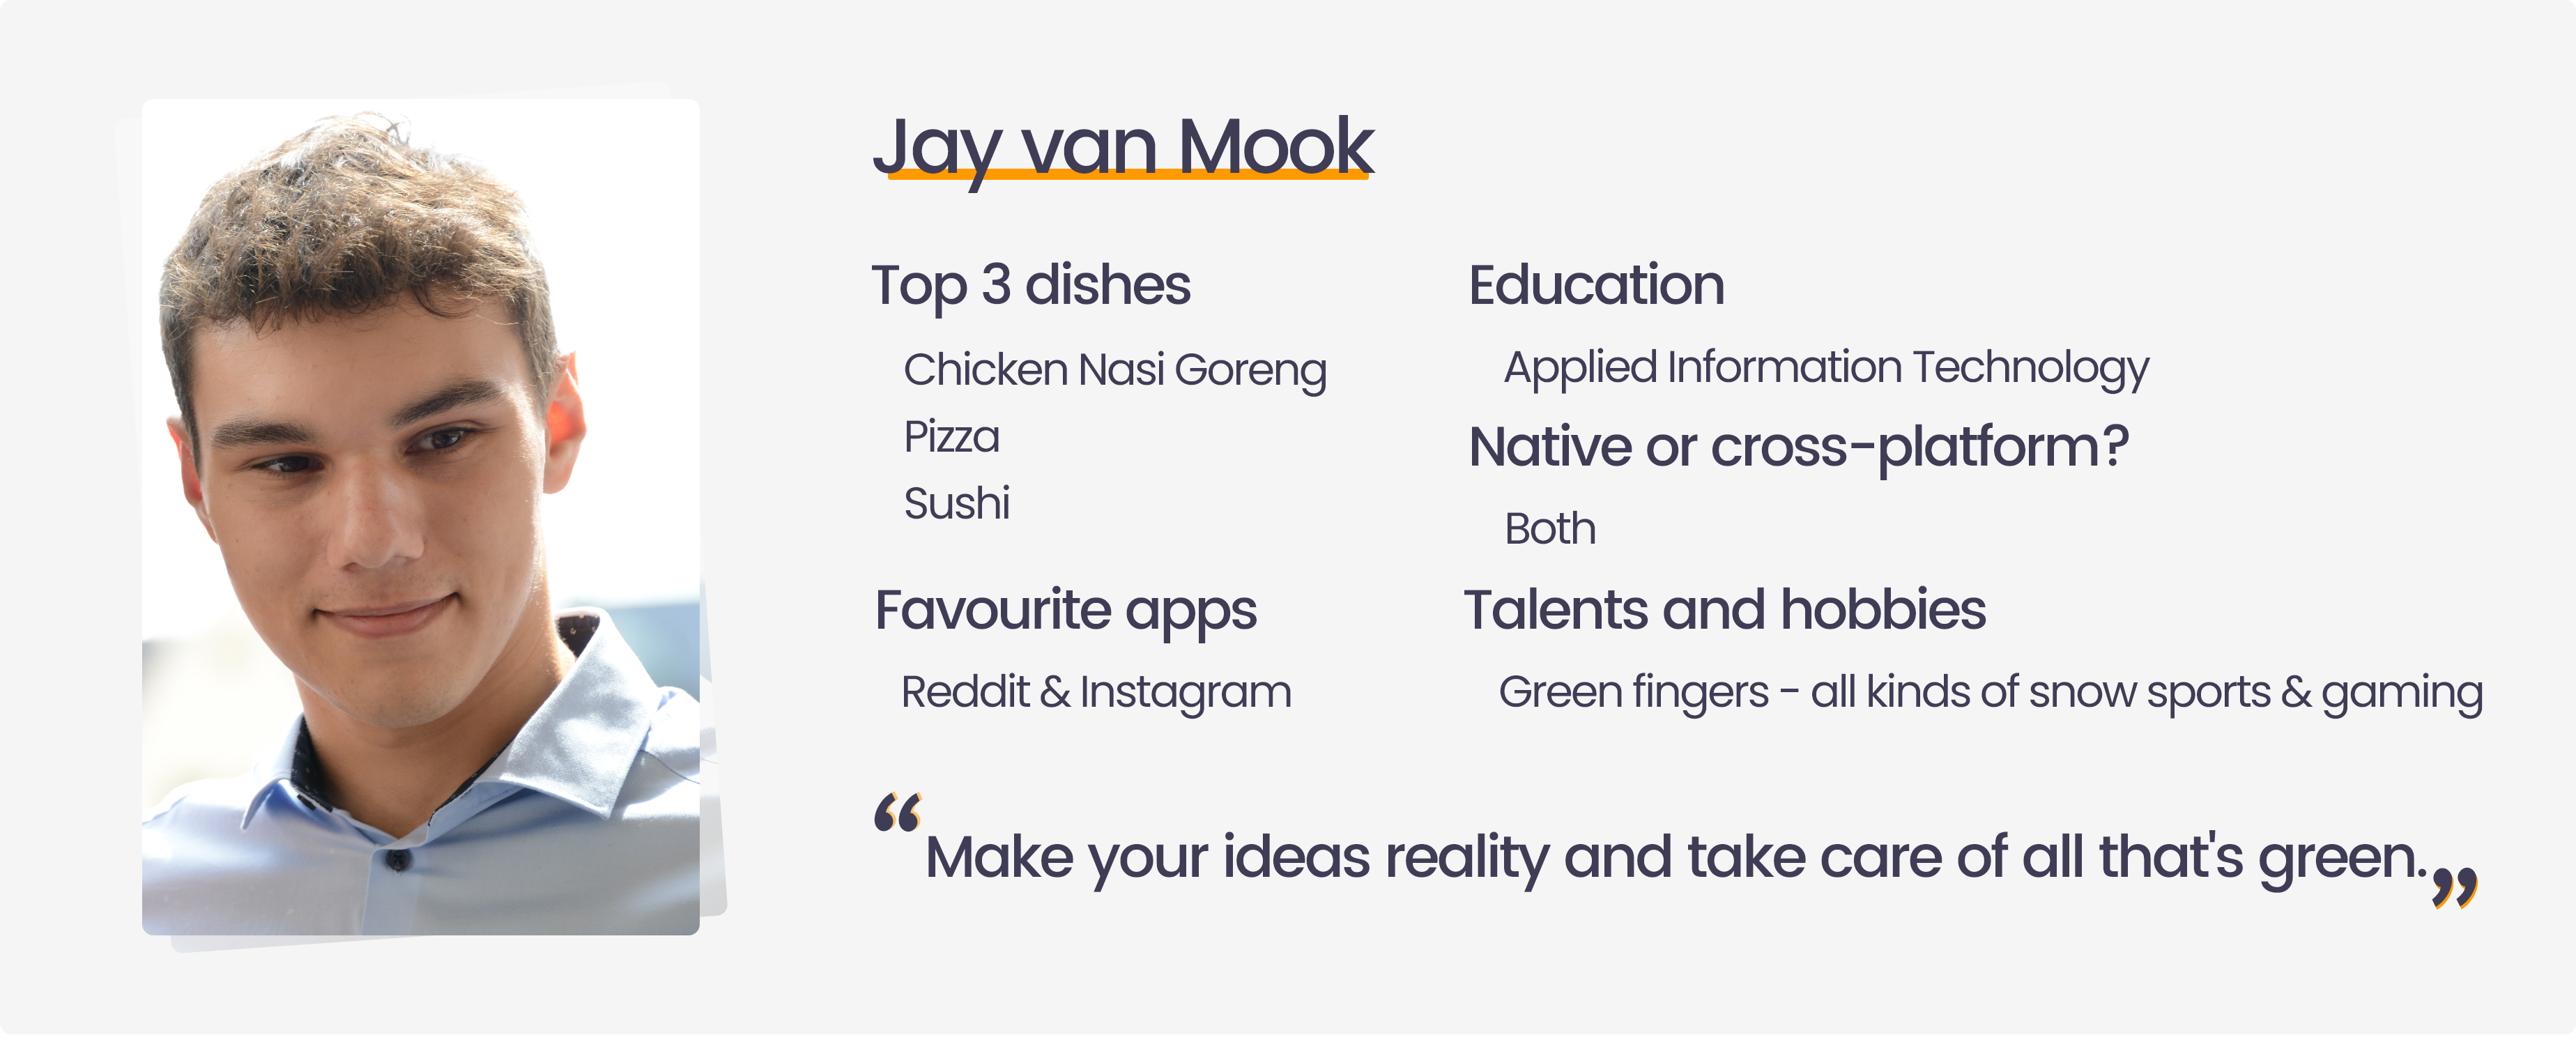 Testimonial internship at Endare from Jay van Mook